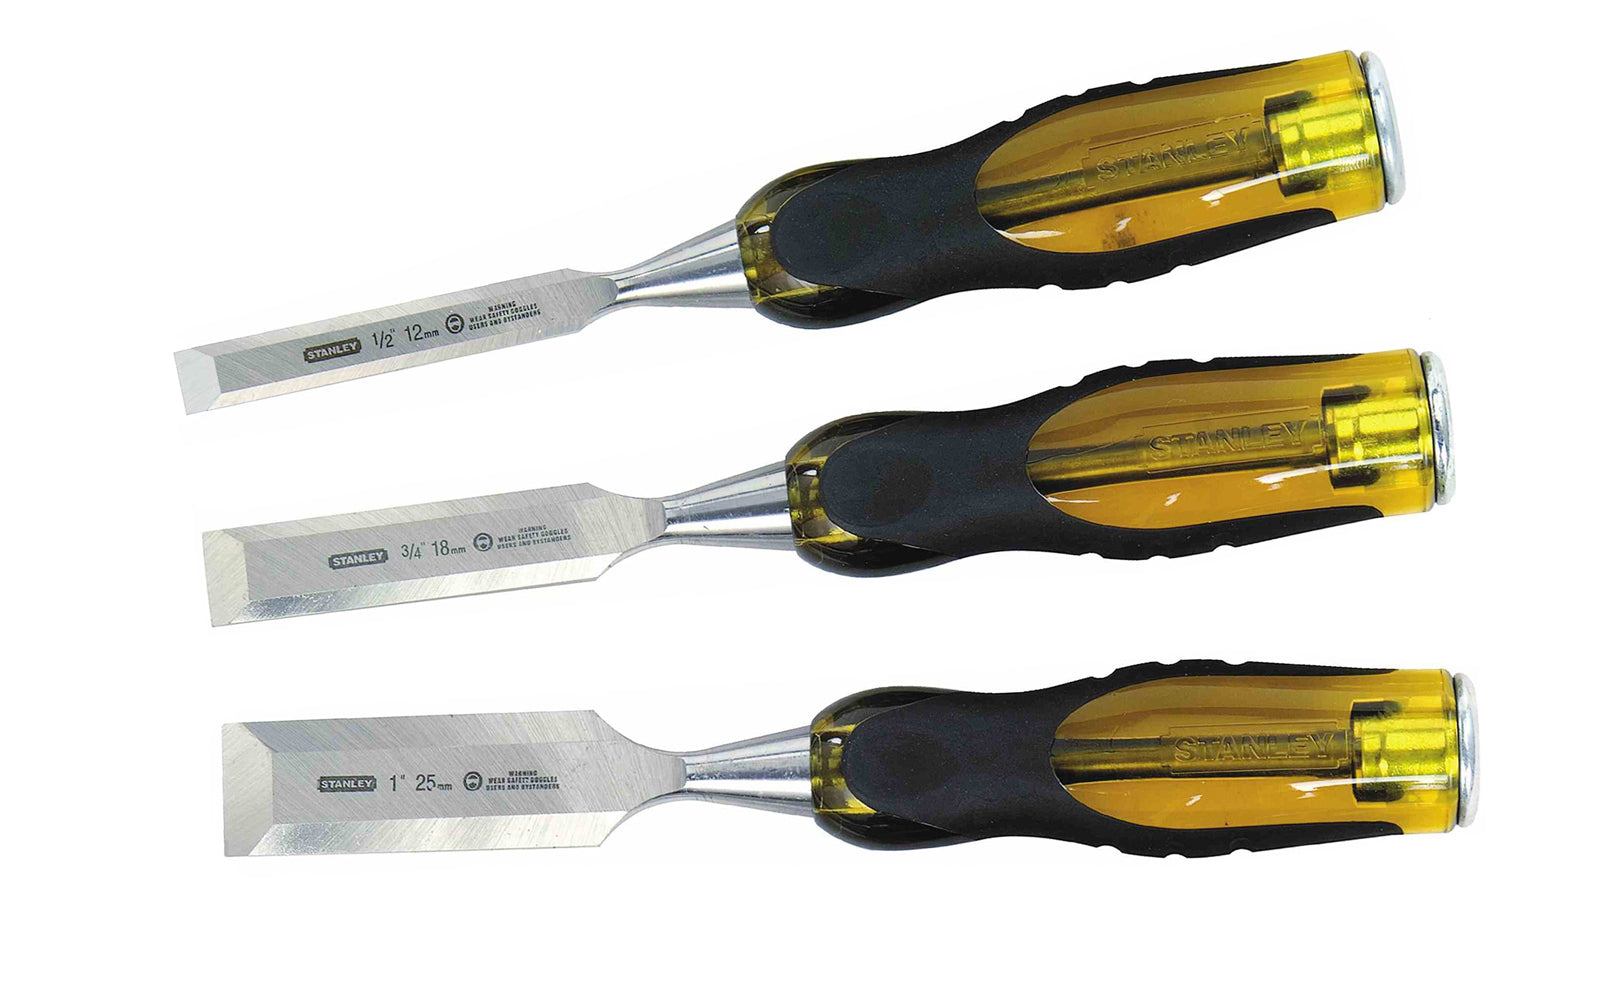 Stanley 3-Piece FatMax Wood Chisel Set ~ 1/2